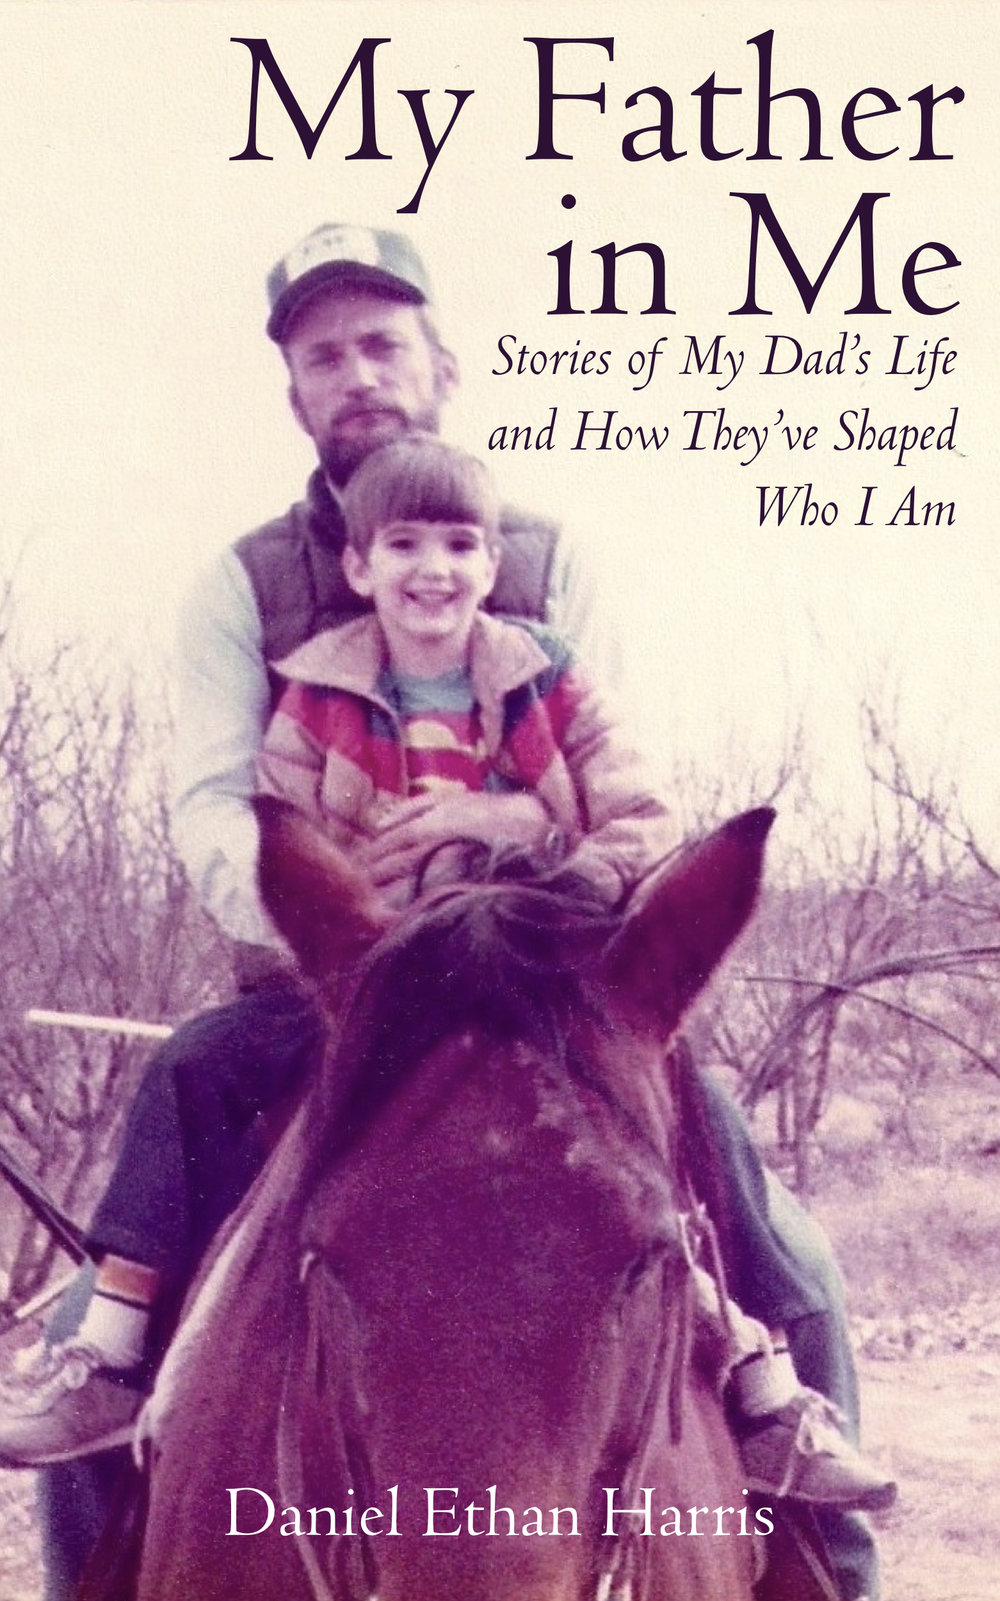 My Father in Me Kindle Cover.001.jpeg